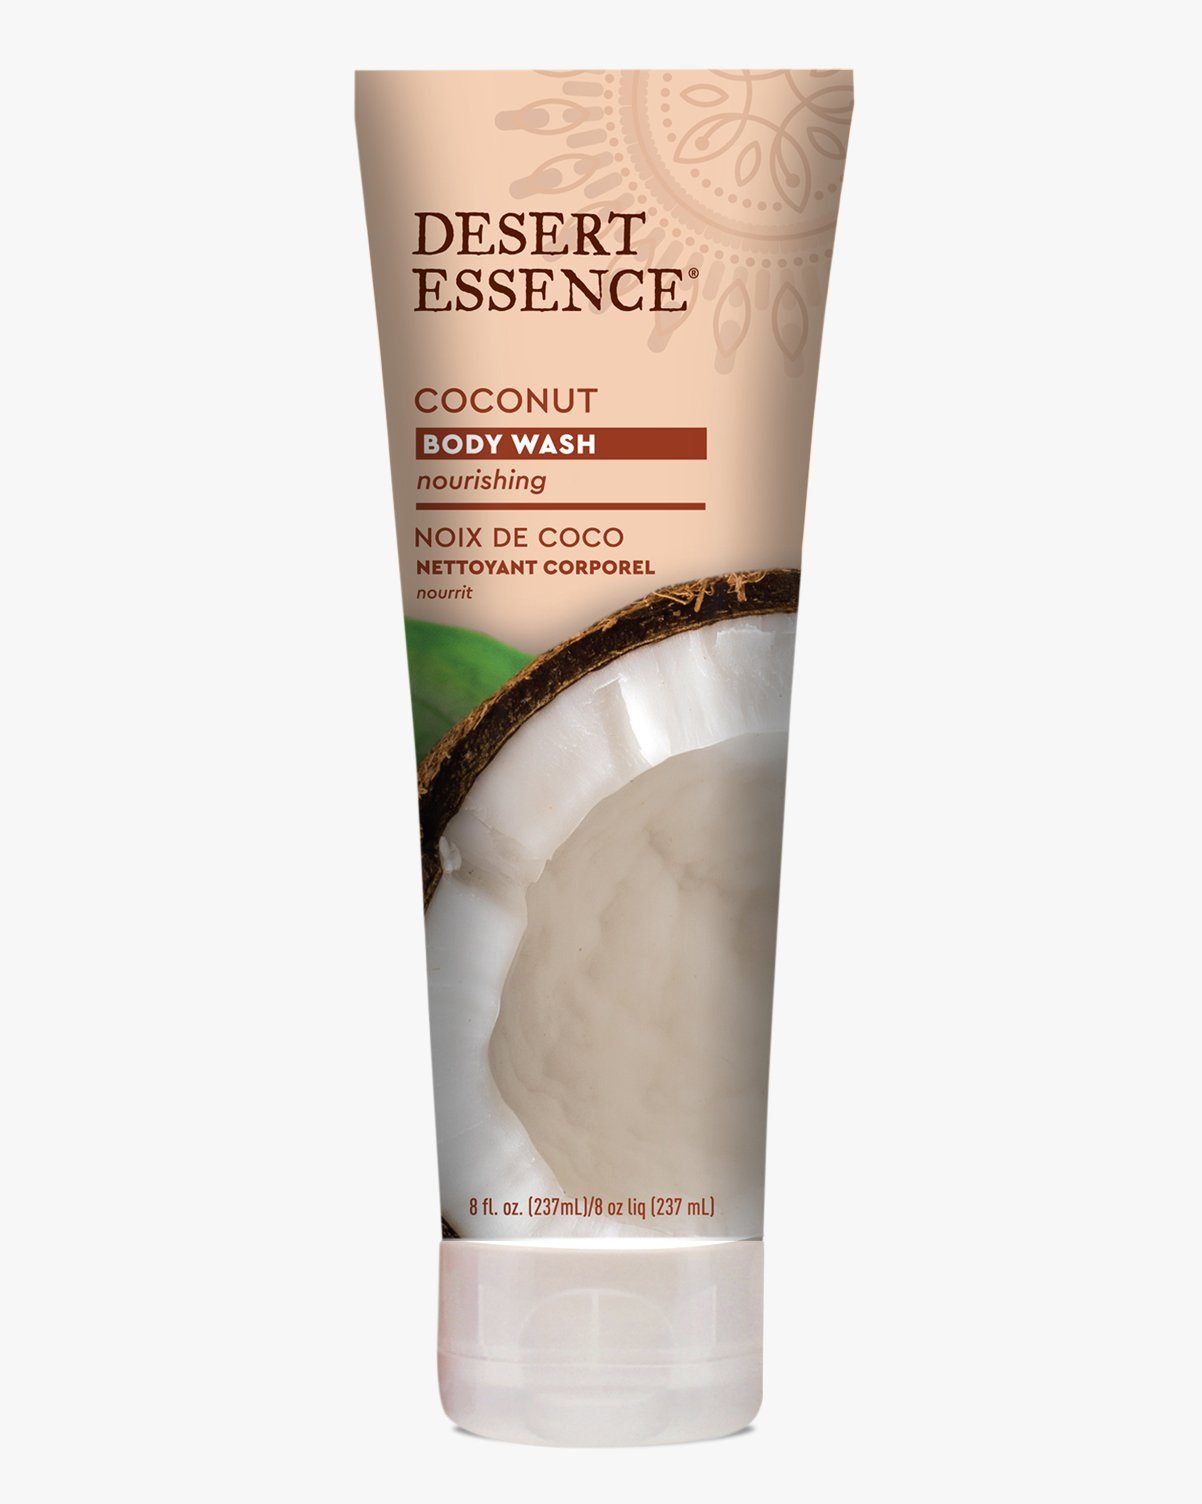 Personal Care - Desert Essence - Coconut Body Wash, 237ml